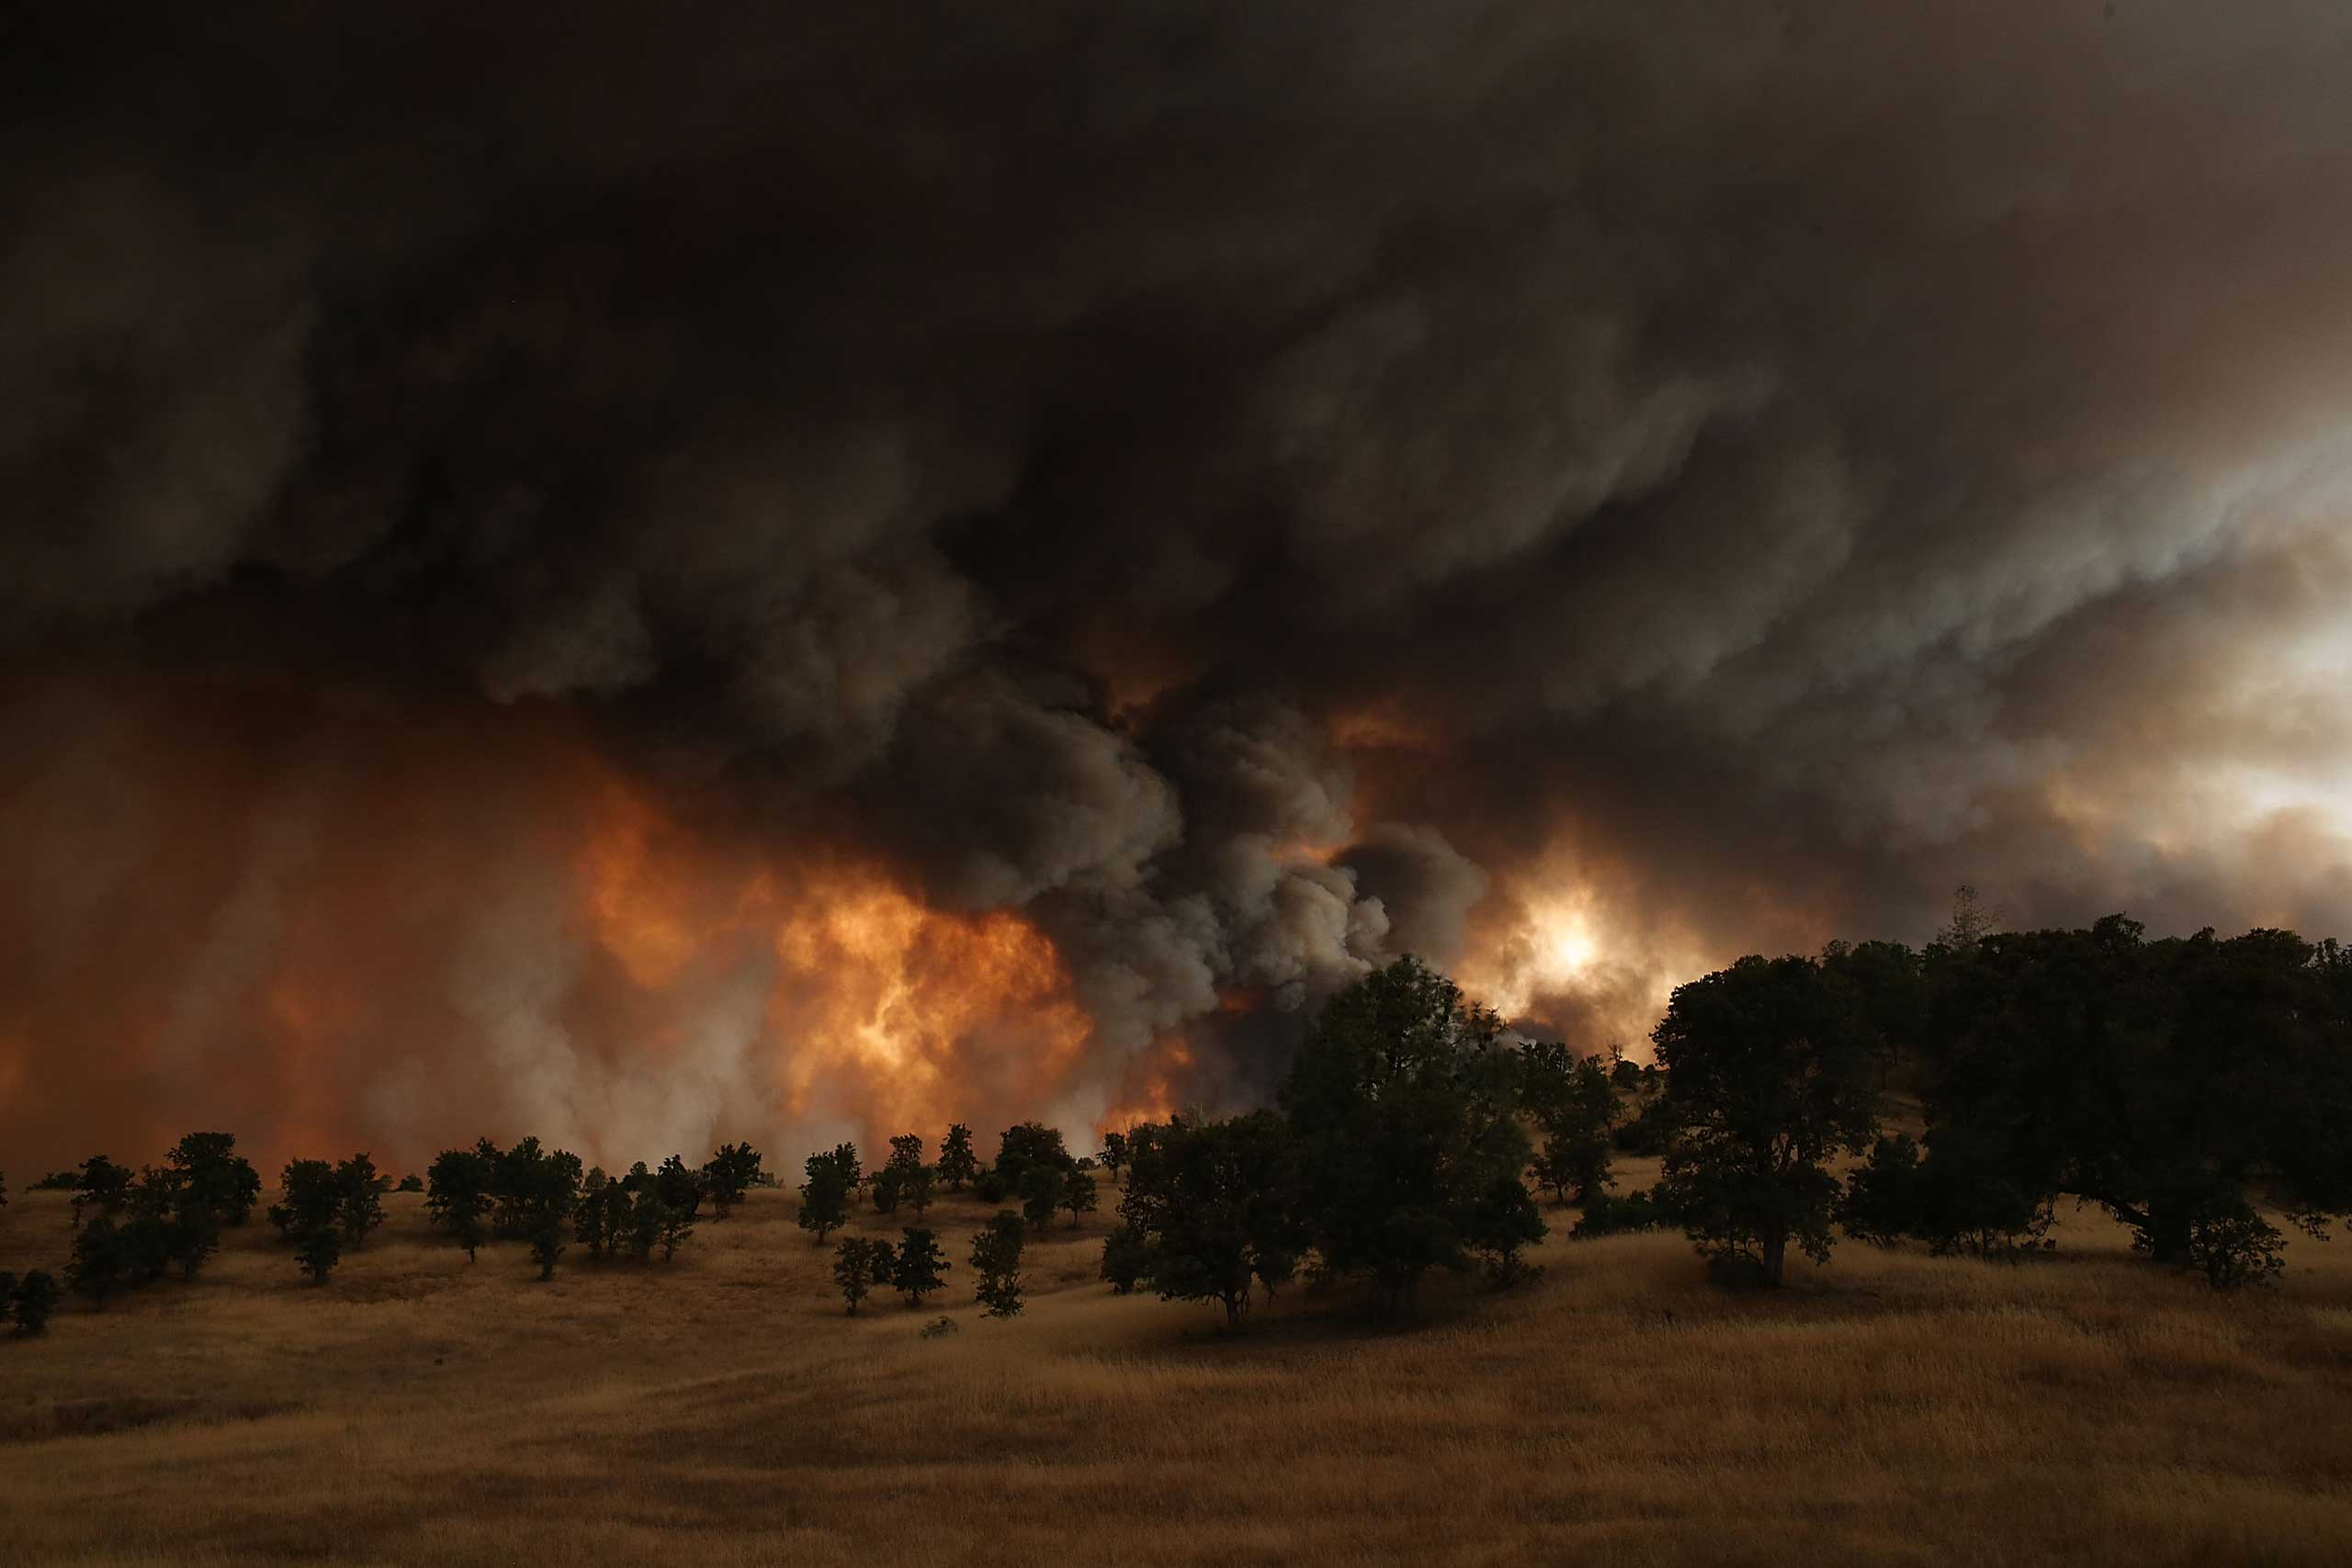 Justin Sullivan:                                 The Rocky Fire had been burning for days when this photo was taken. On this particular day it was raging through tinder dry brush due to four years of severe drought. The stubborn fire exploded to nearly double its size within hours, charring more than 20,000 acres in less than 24 hours.                                                               In my years covering wildfire, I have never seen a fire grow so quickly. It was a surreal scene to be sitting along highway 20 with dozens of firefighters who were essentially waiting for the fire to come to them. The black columns of smoke filled the sky and the light from the setting sun filtered through, casting eerie light onto the landscape. It was mesmerizing to watch the thick smoke as it slowly rose from the hills.                                                               The flames reached highway 20 after 2AM and were met by dozens of fire crews who lit back fires to help contain it and keep it from jumping the road.                                                                This photo was taken near Clearlake, Calif. on Aug. 1, 2015.